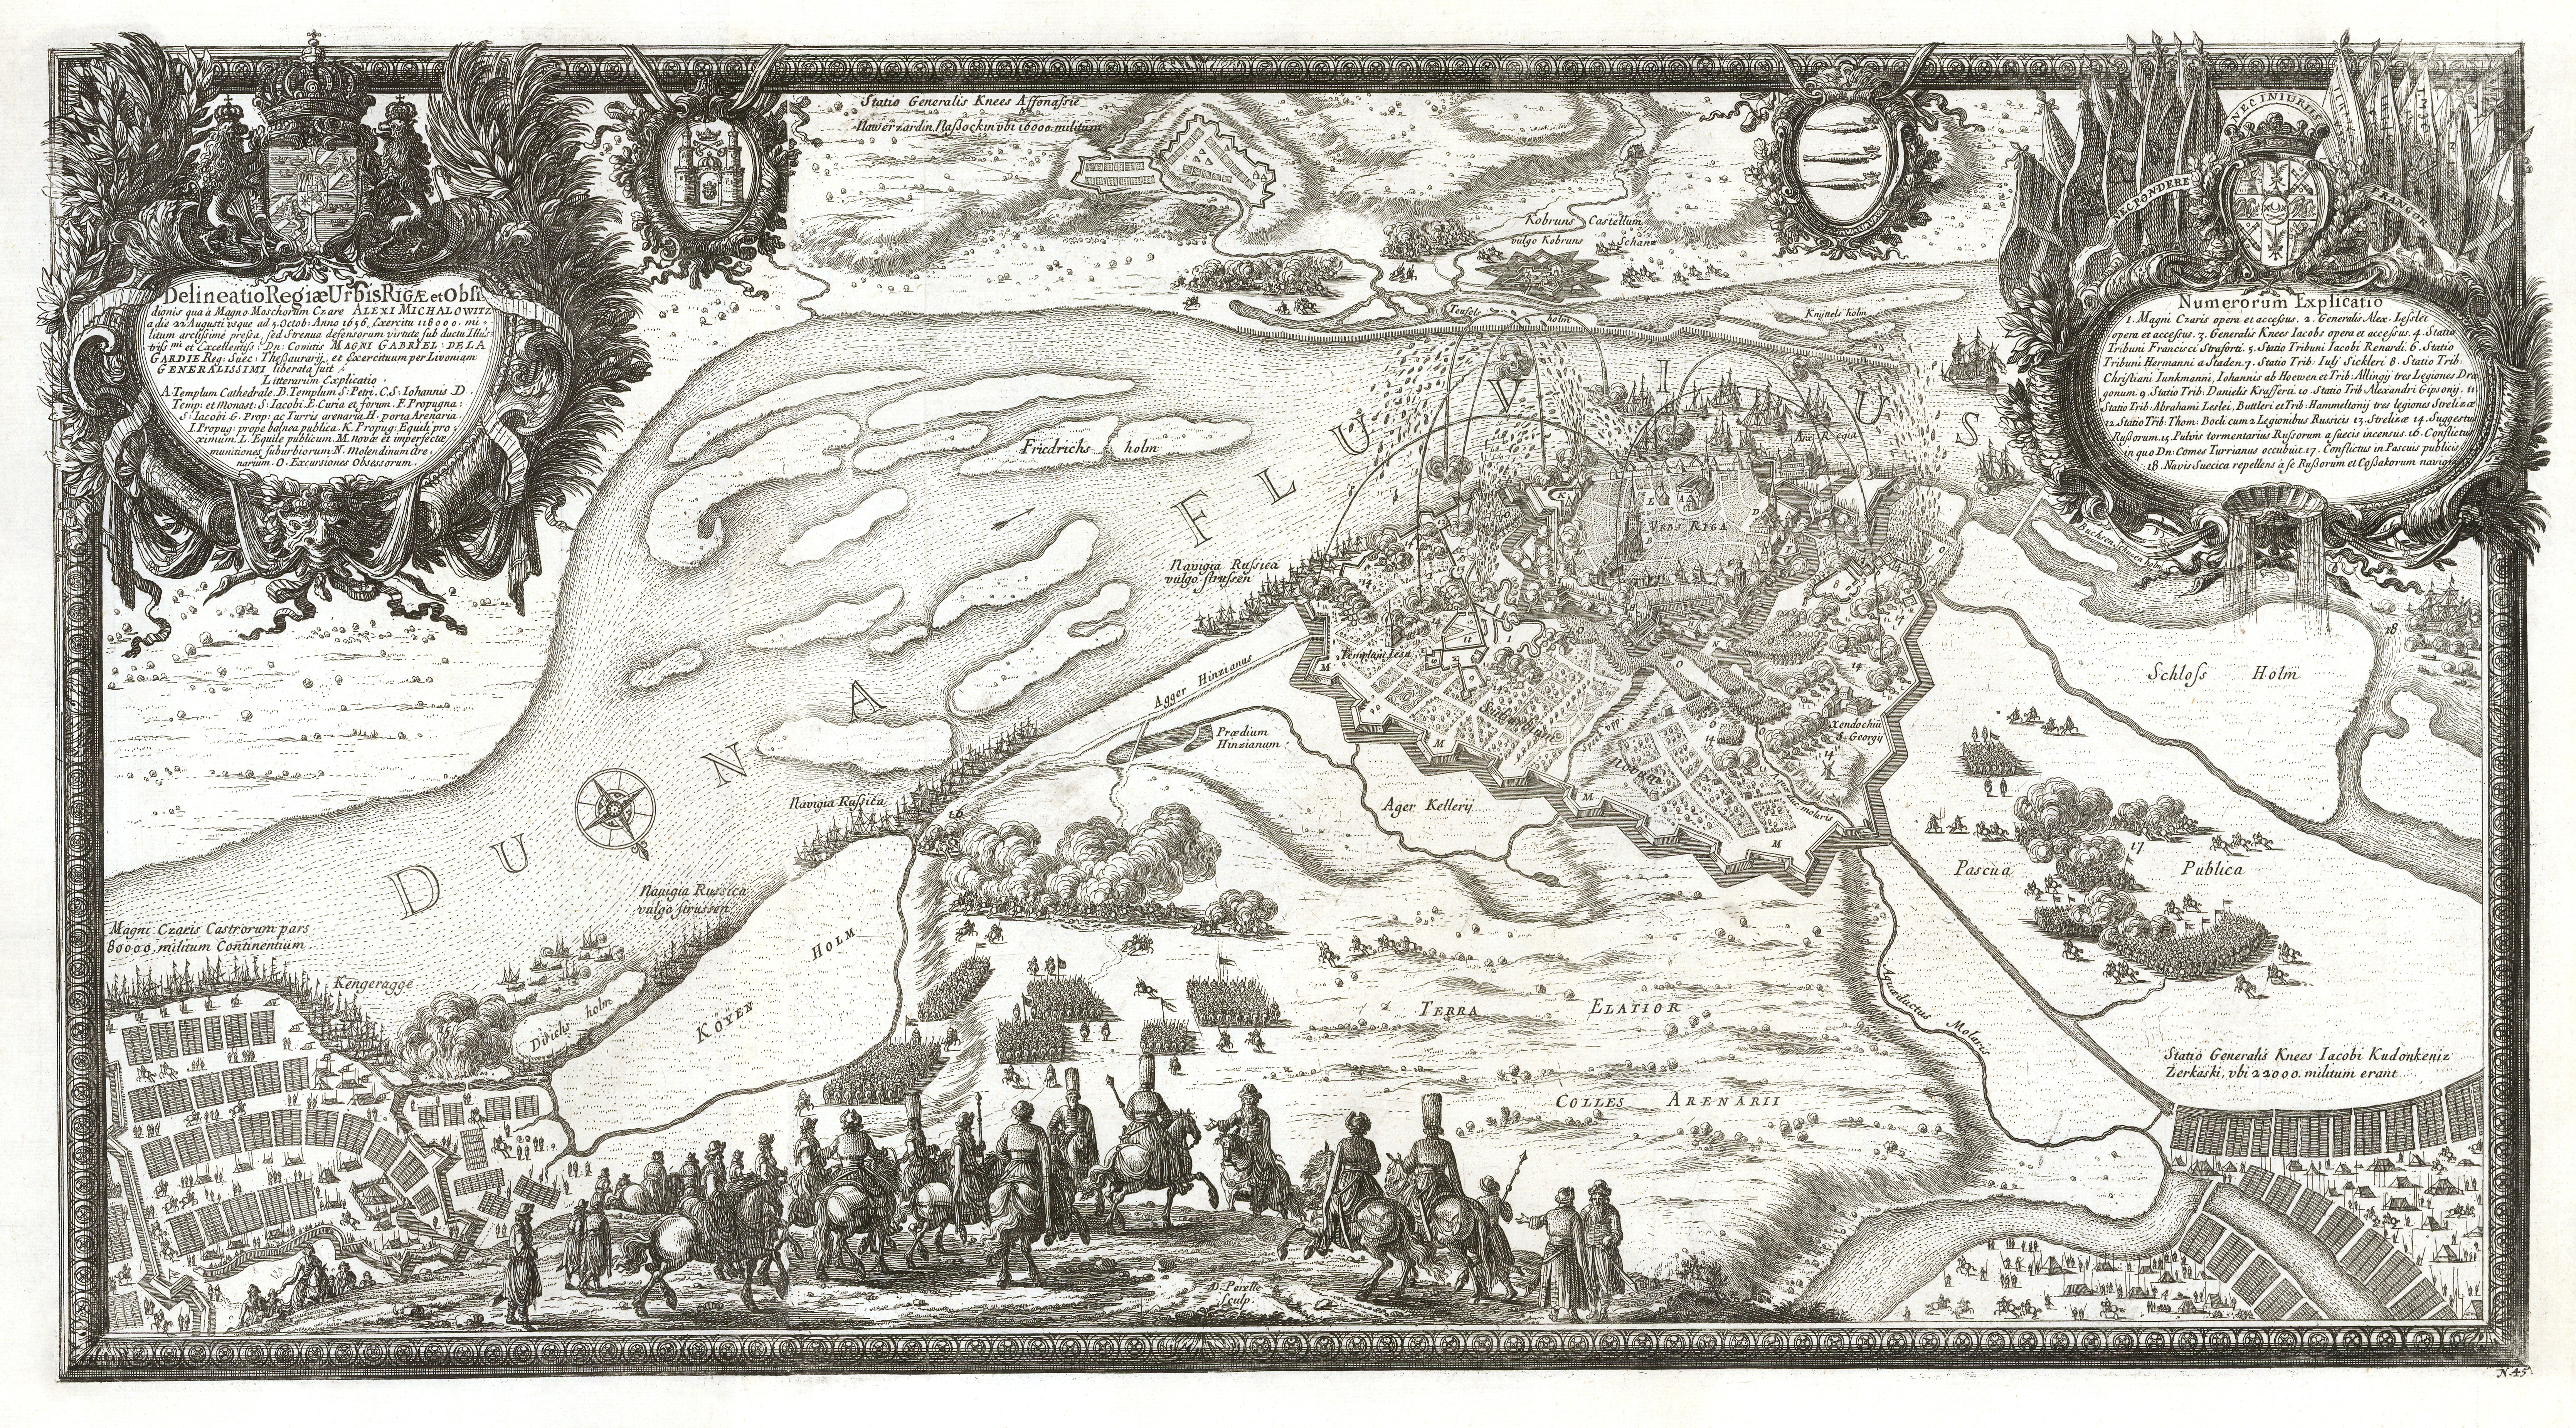 File:The siege of Riga 1656.jpg